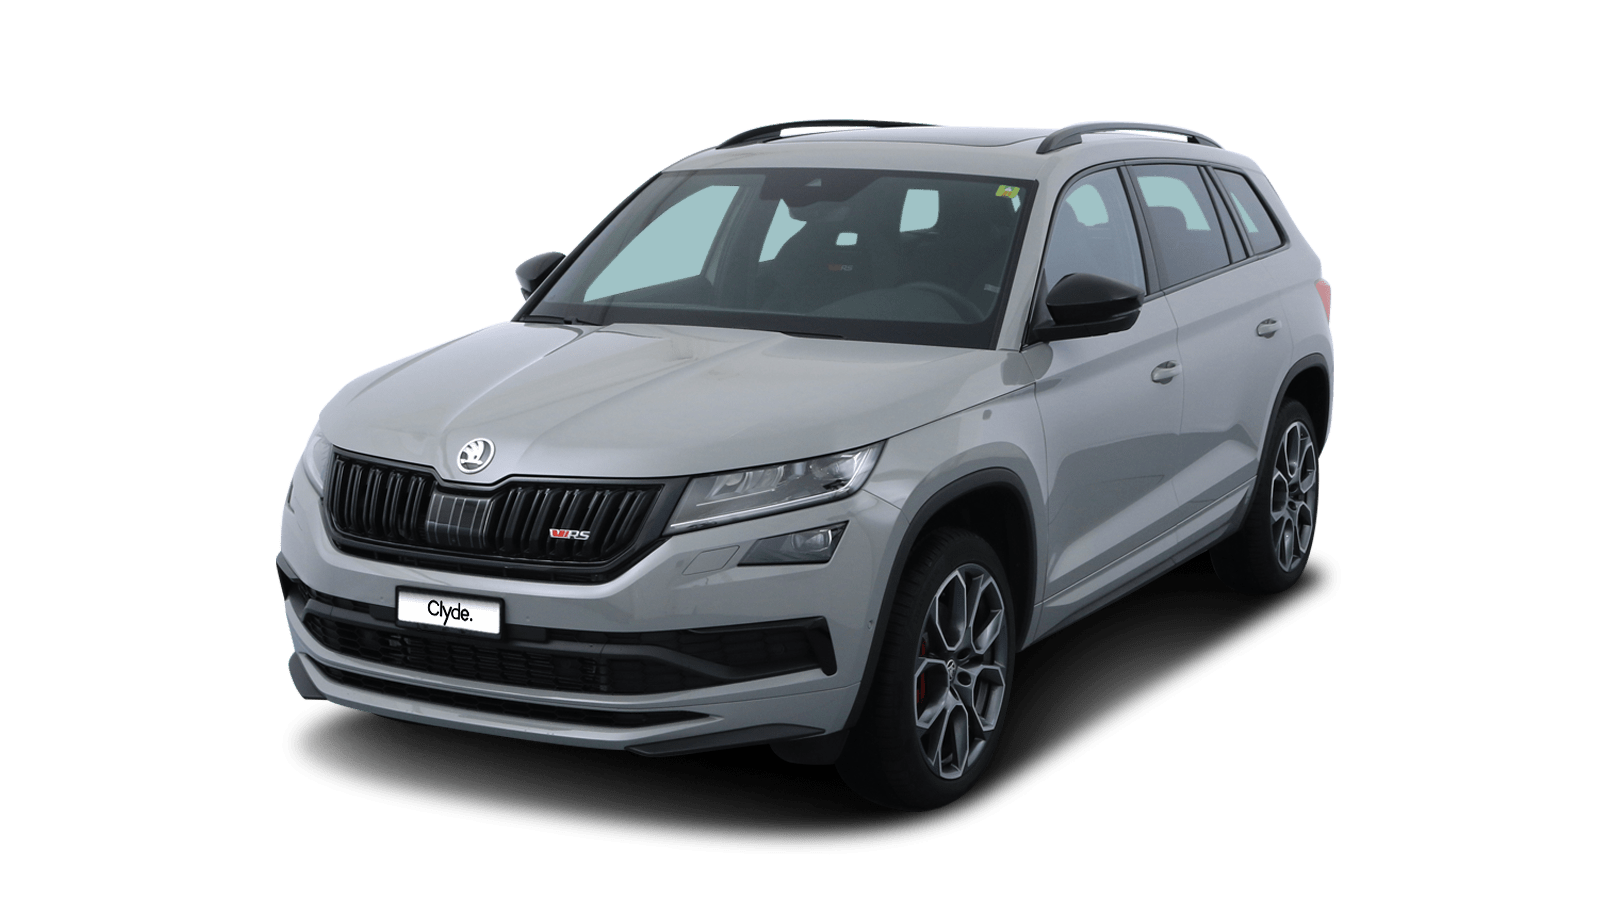 ŠKODA KODIAQ RS Grey front - Clyde car subscription